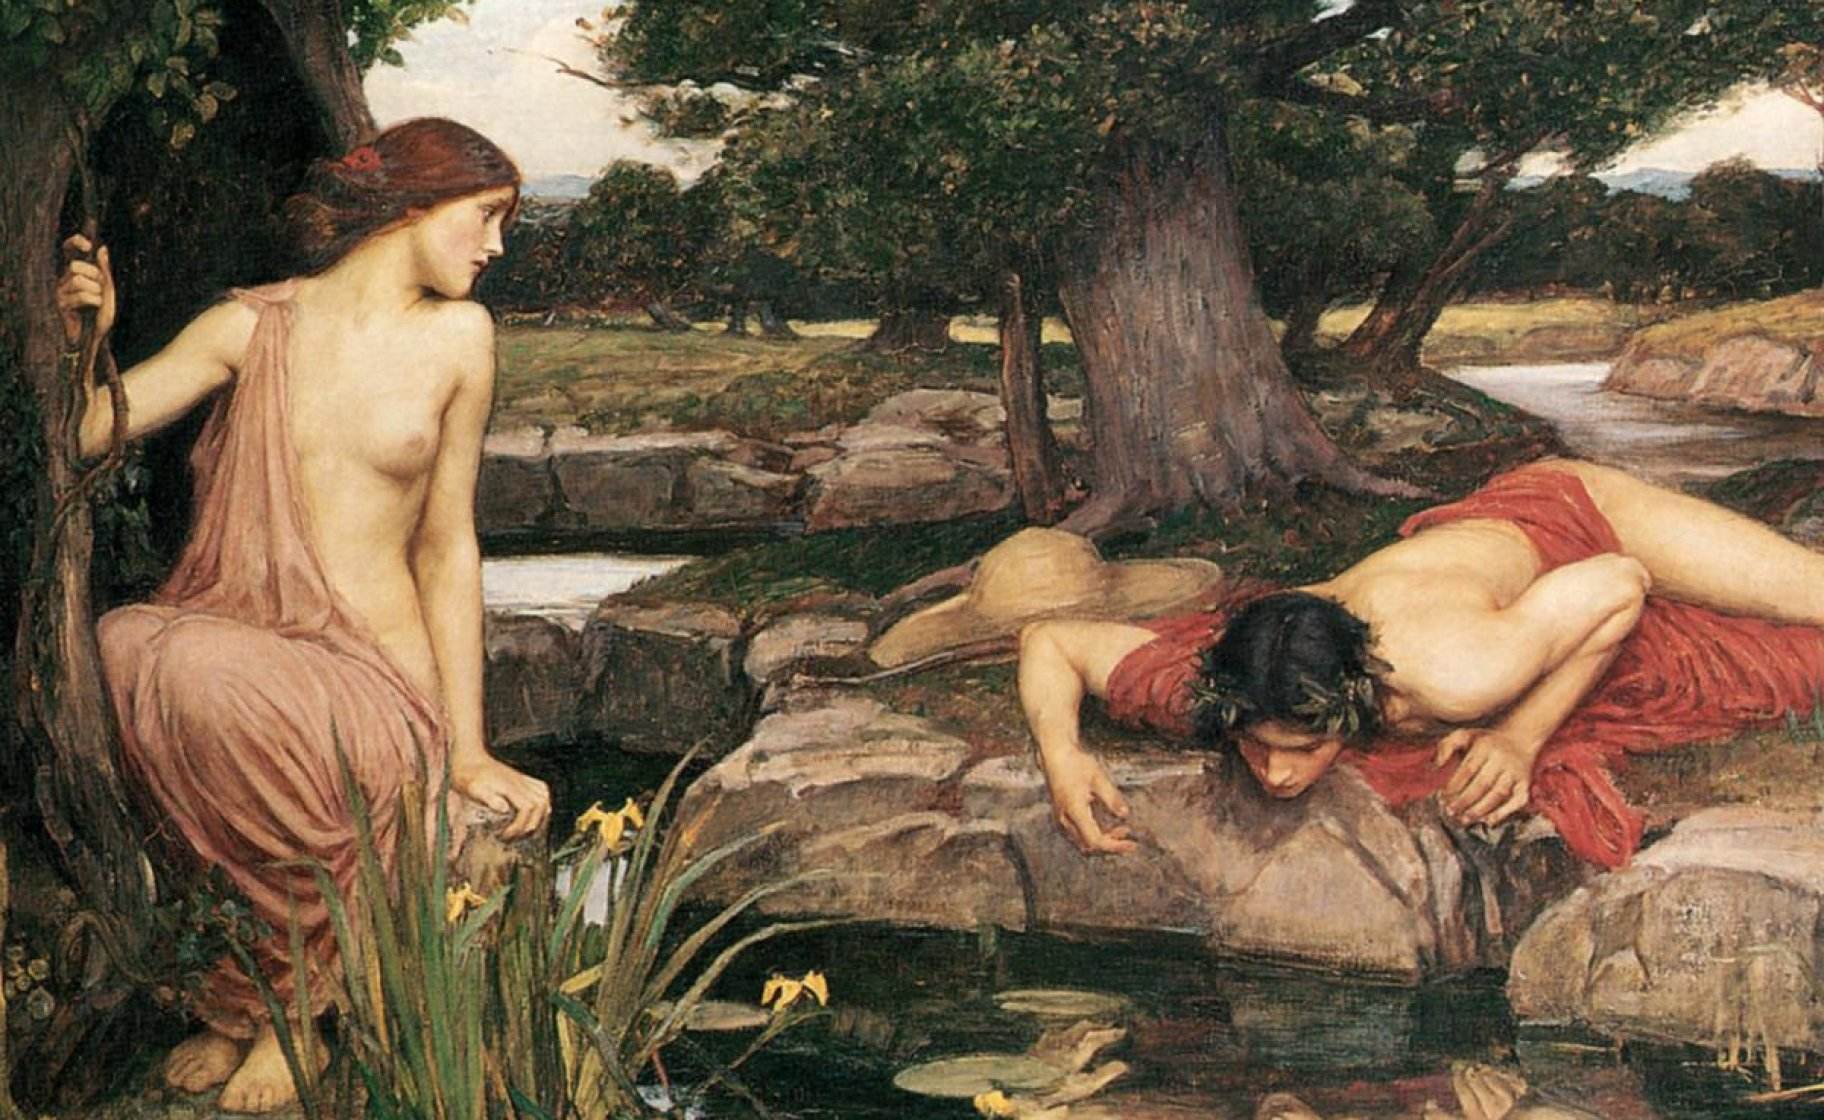 'Echo and Narcissus' (detail), 1903, John William Waterhouse